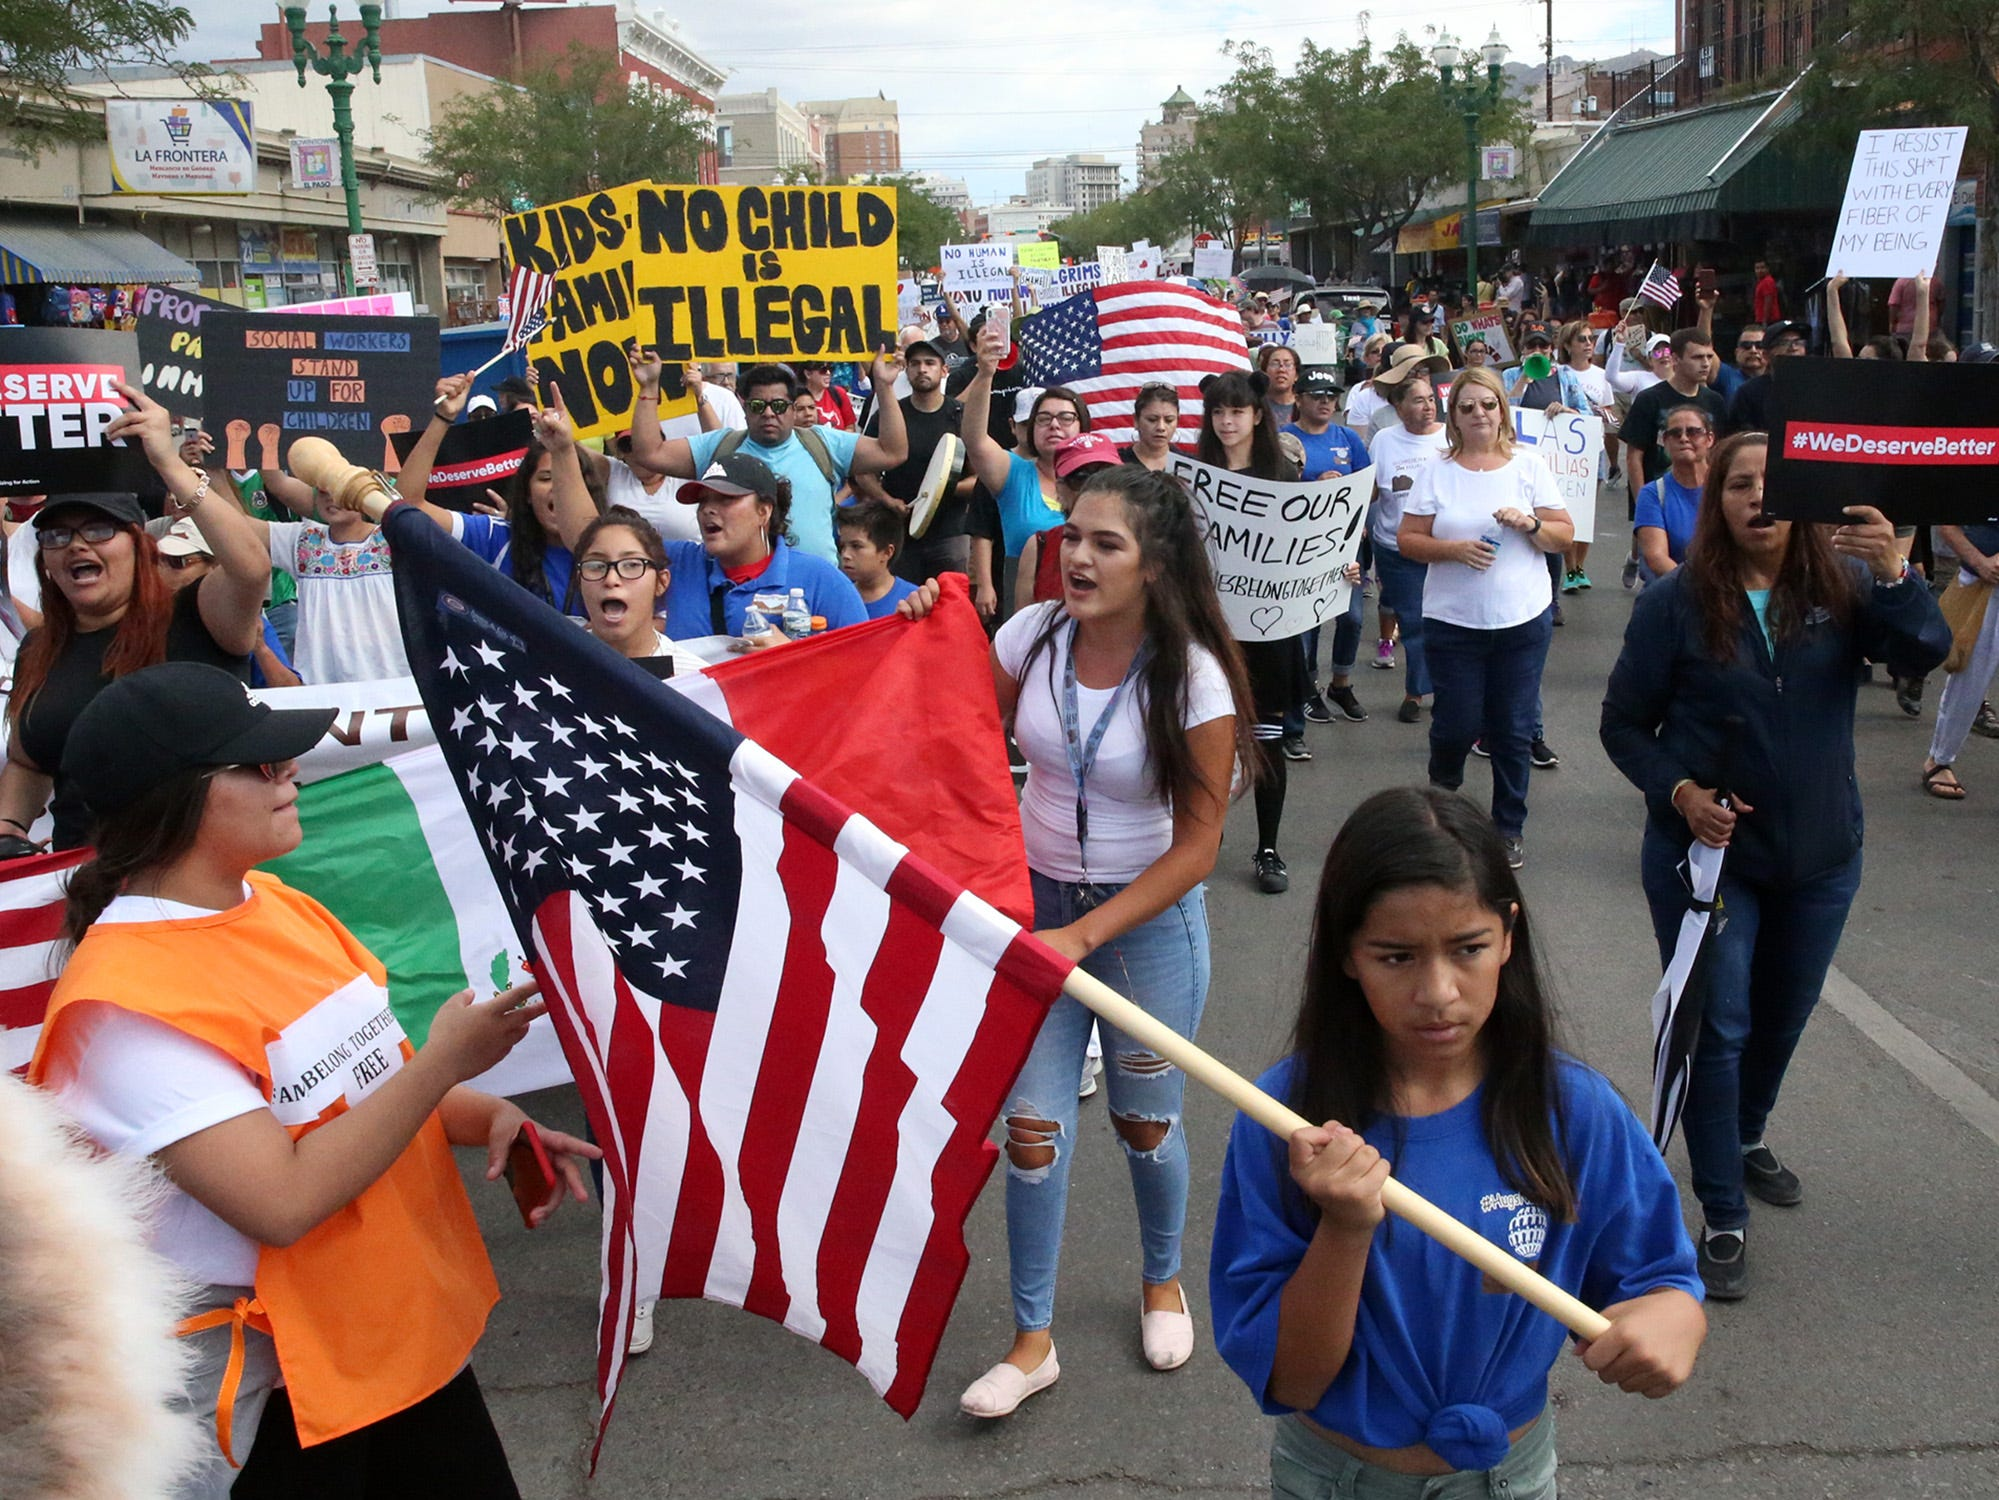 June 30, 2018: Demonstrators  march down South El Paso Street to the base of the Paso Del Norte Port of Entry during a Òmassive mobilizationÓ in downtown El Paso, Texas calling for the end of federal practices of separating immigrant families and children who were seeking asylum.